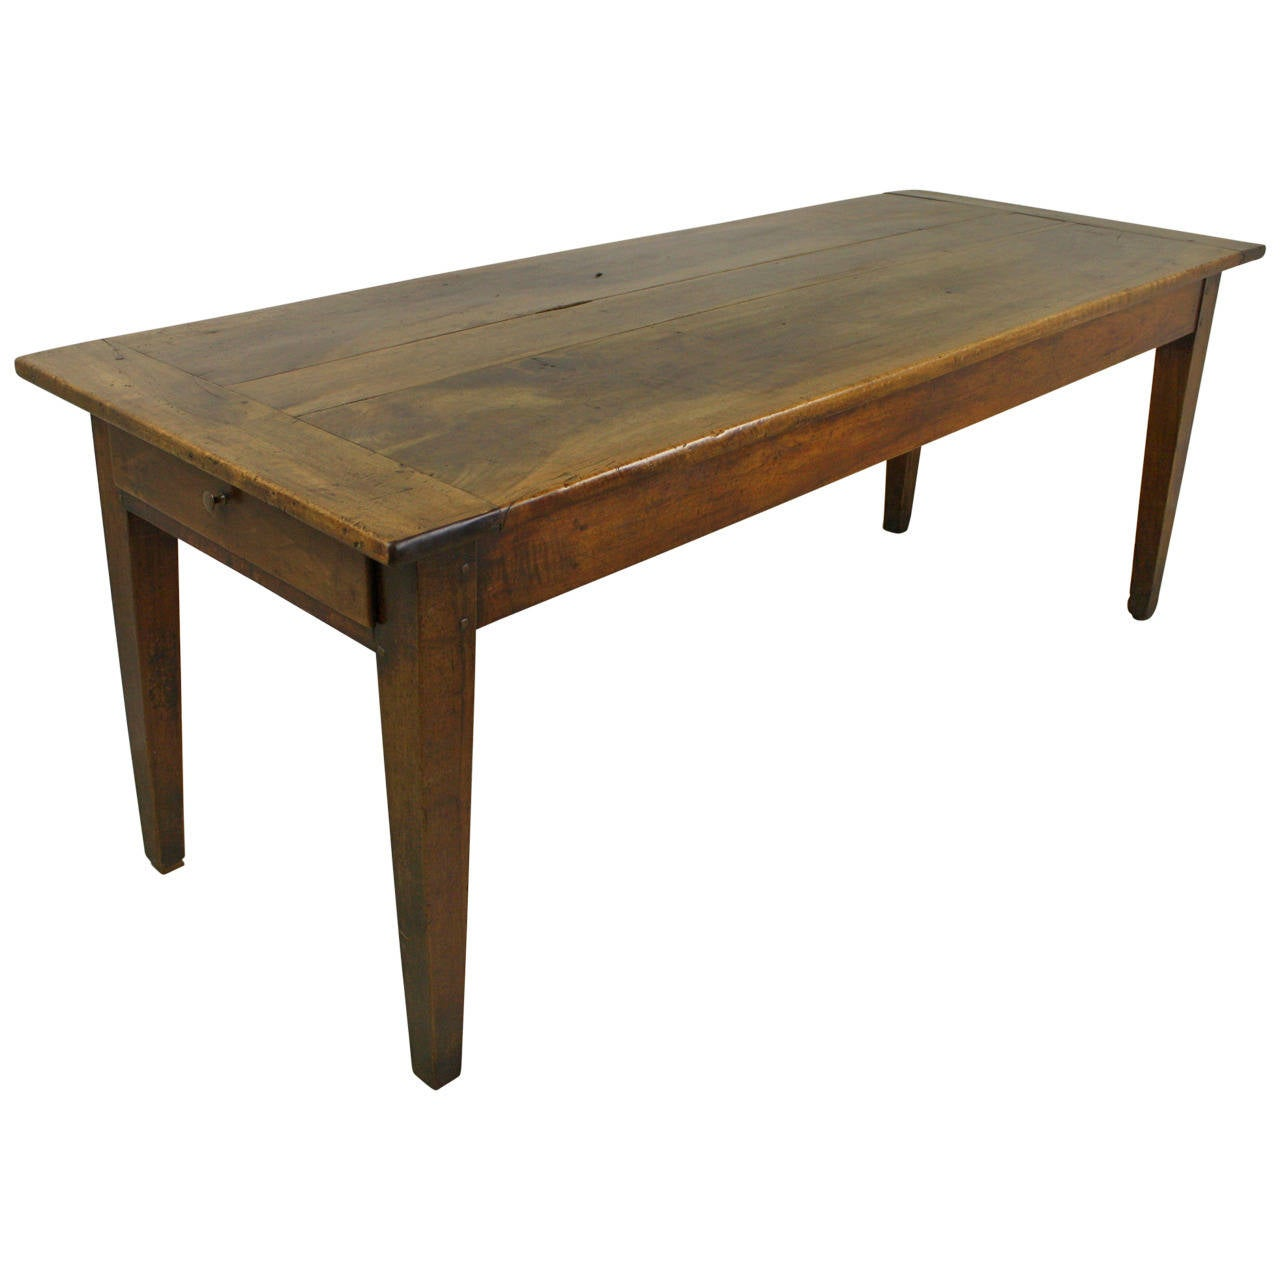 Antique French Walnut Farm Table at 1stdibs